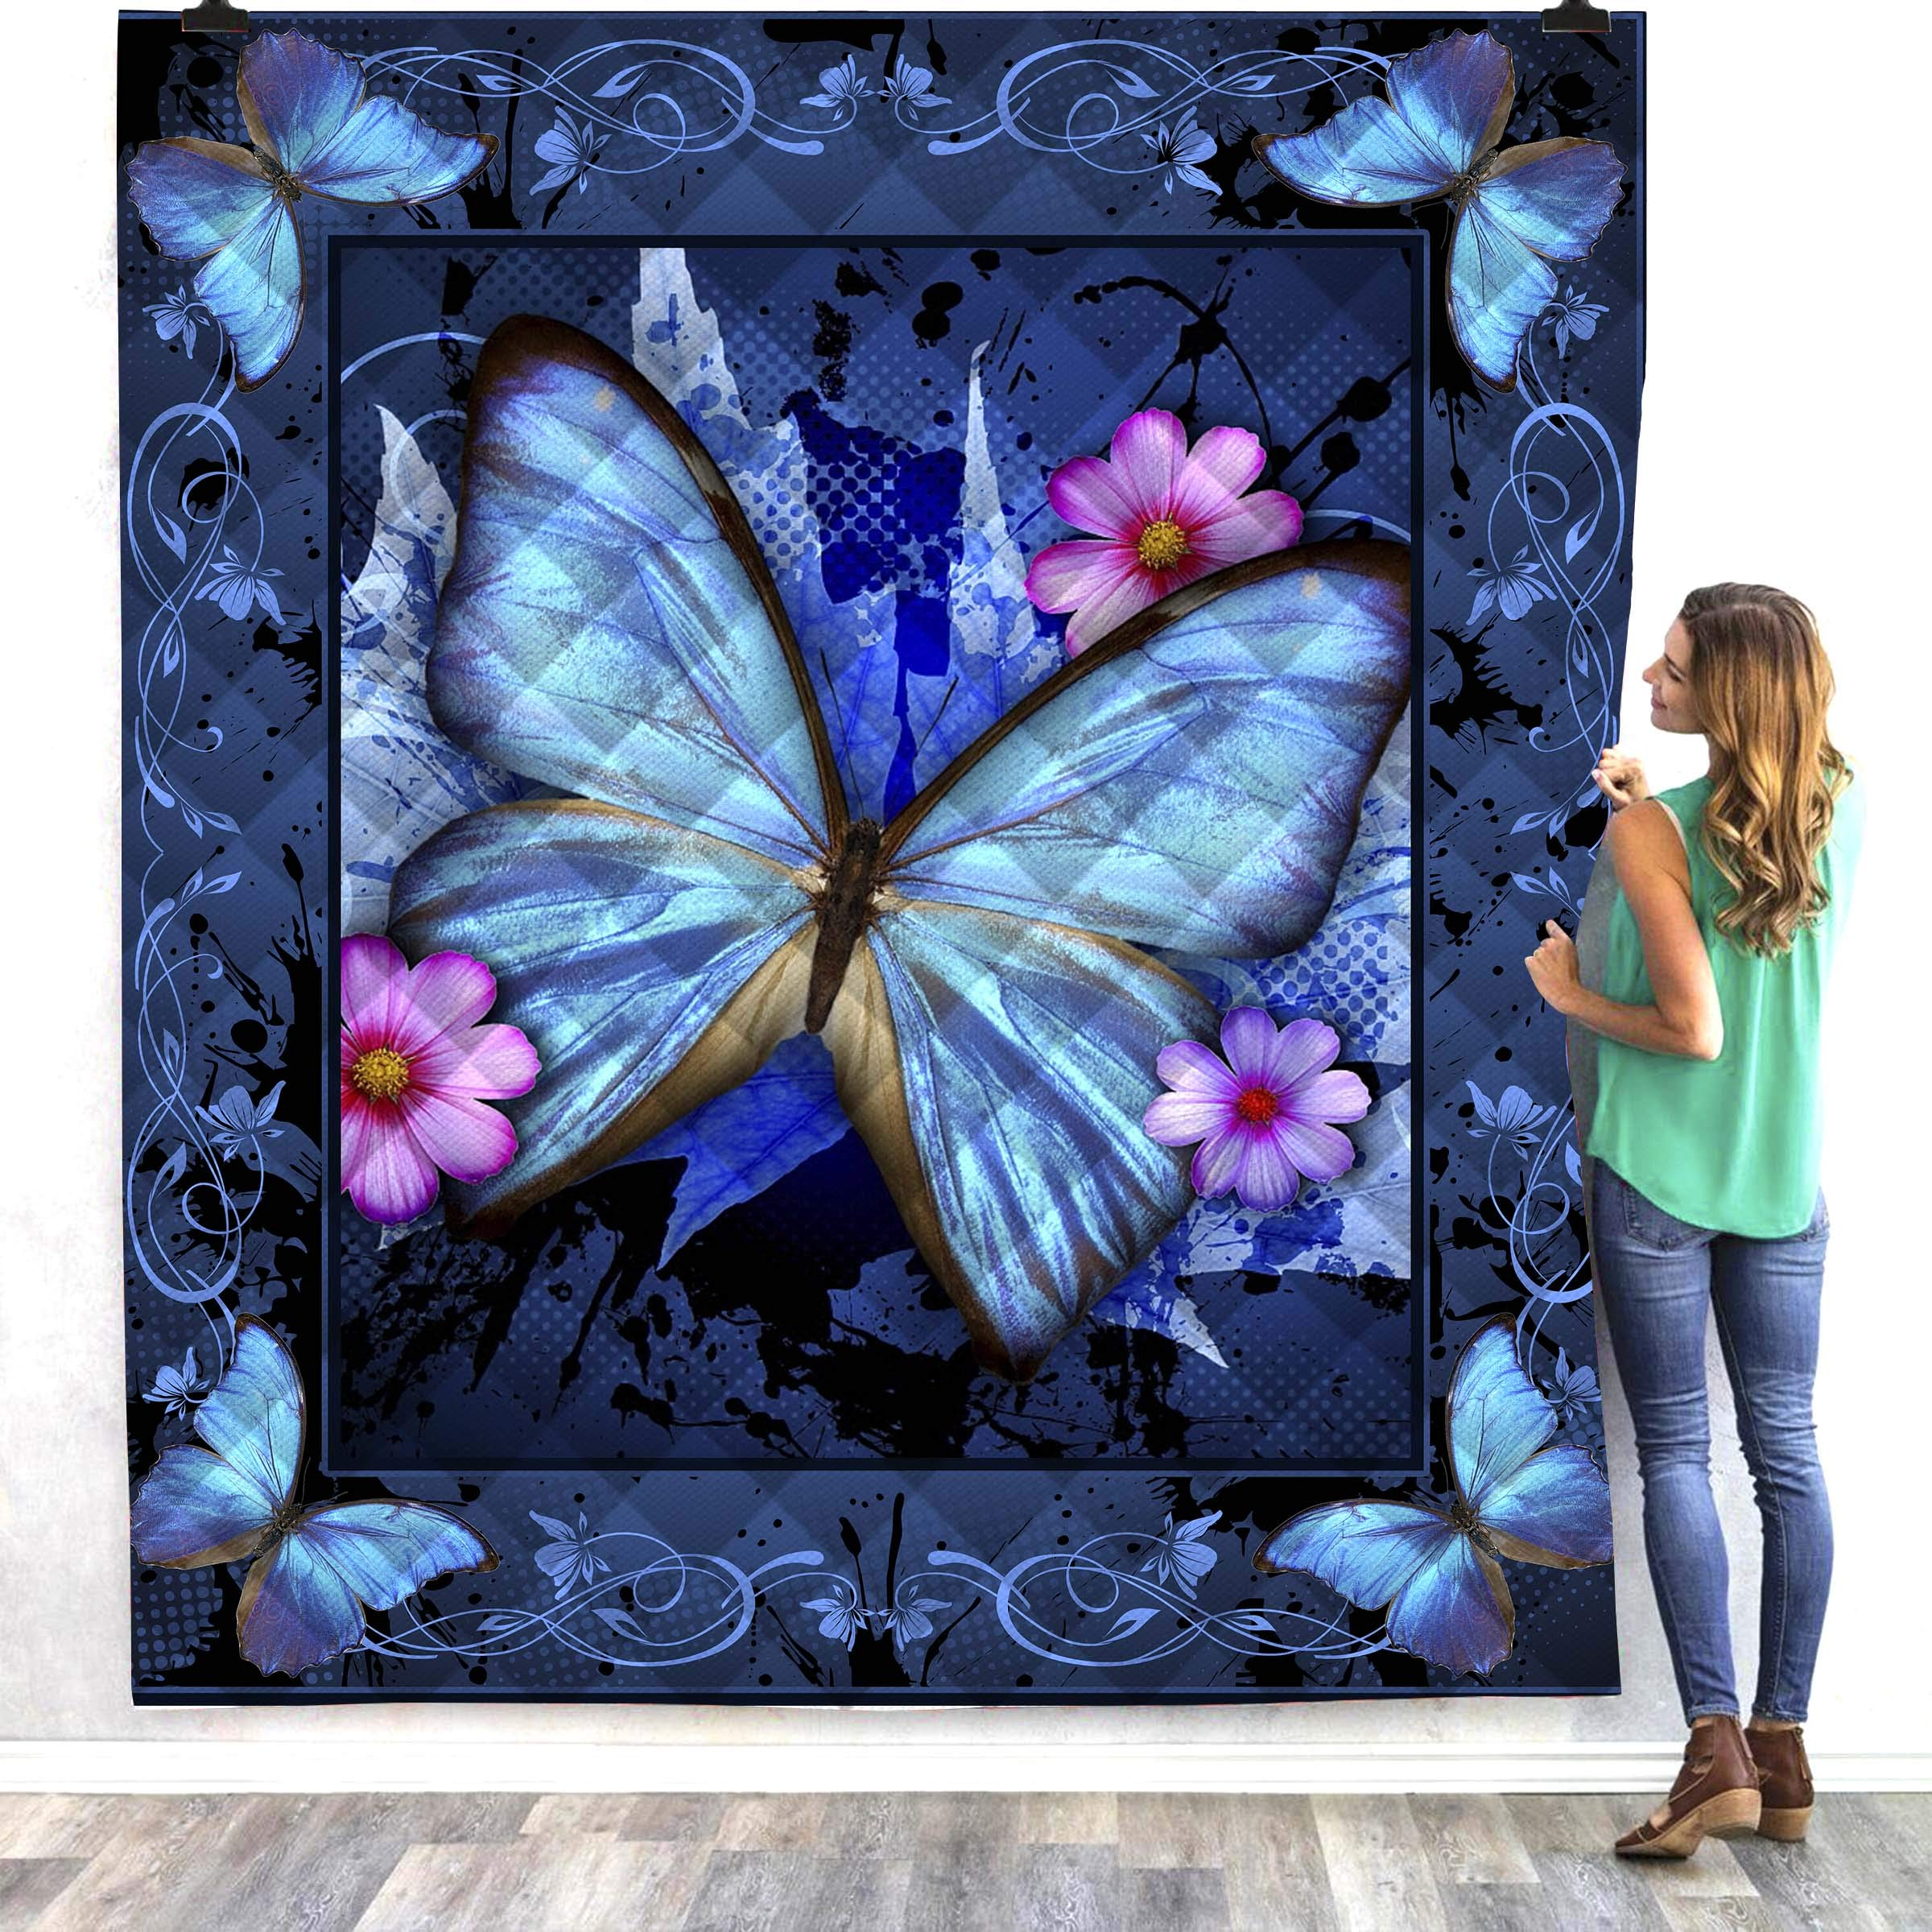 YunTu 3D Printed Butterfly King Quilt Queen Quilts for Kids Quilted Placemats Navy Quilted Throw Blanket Outdoor Picnic Camping Mat (Butterfly A,King)